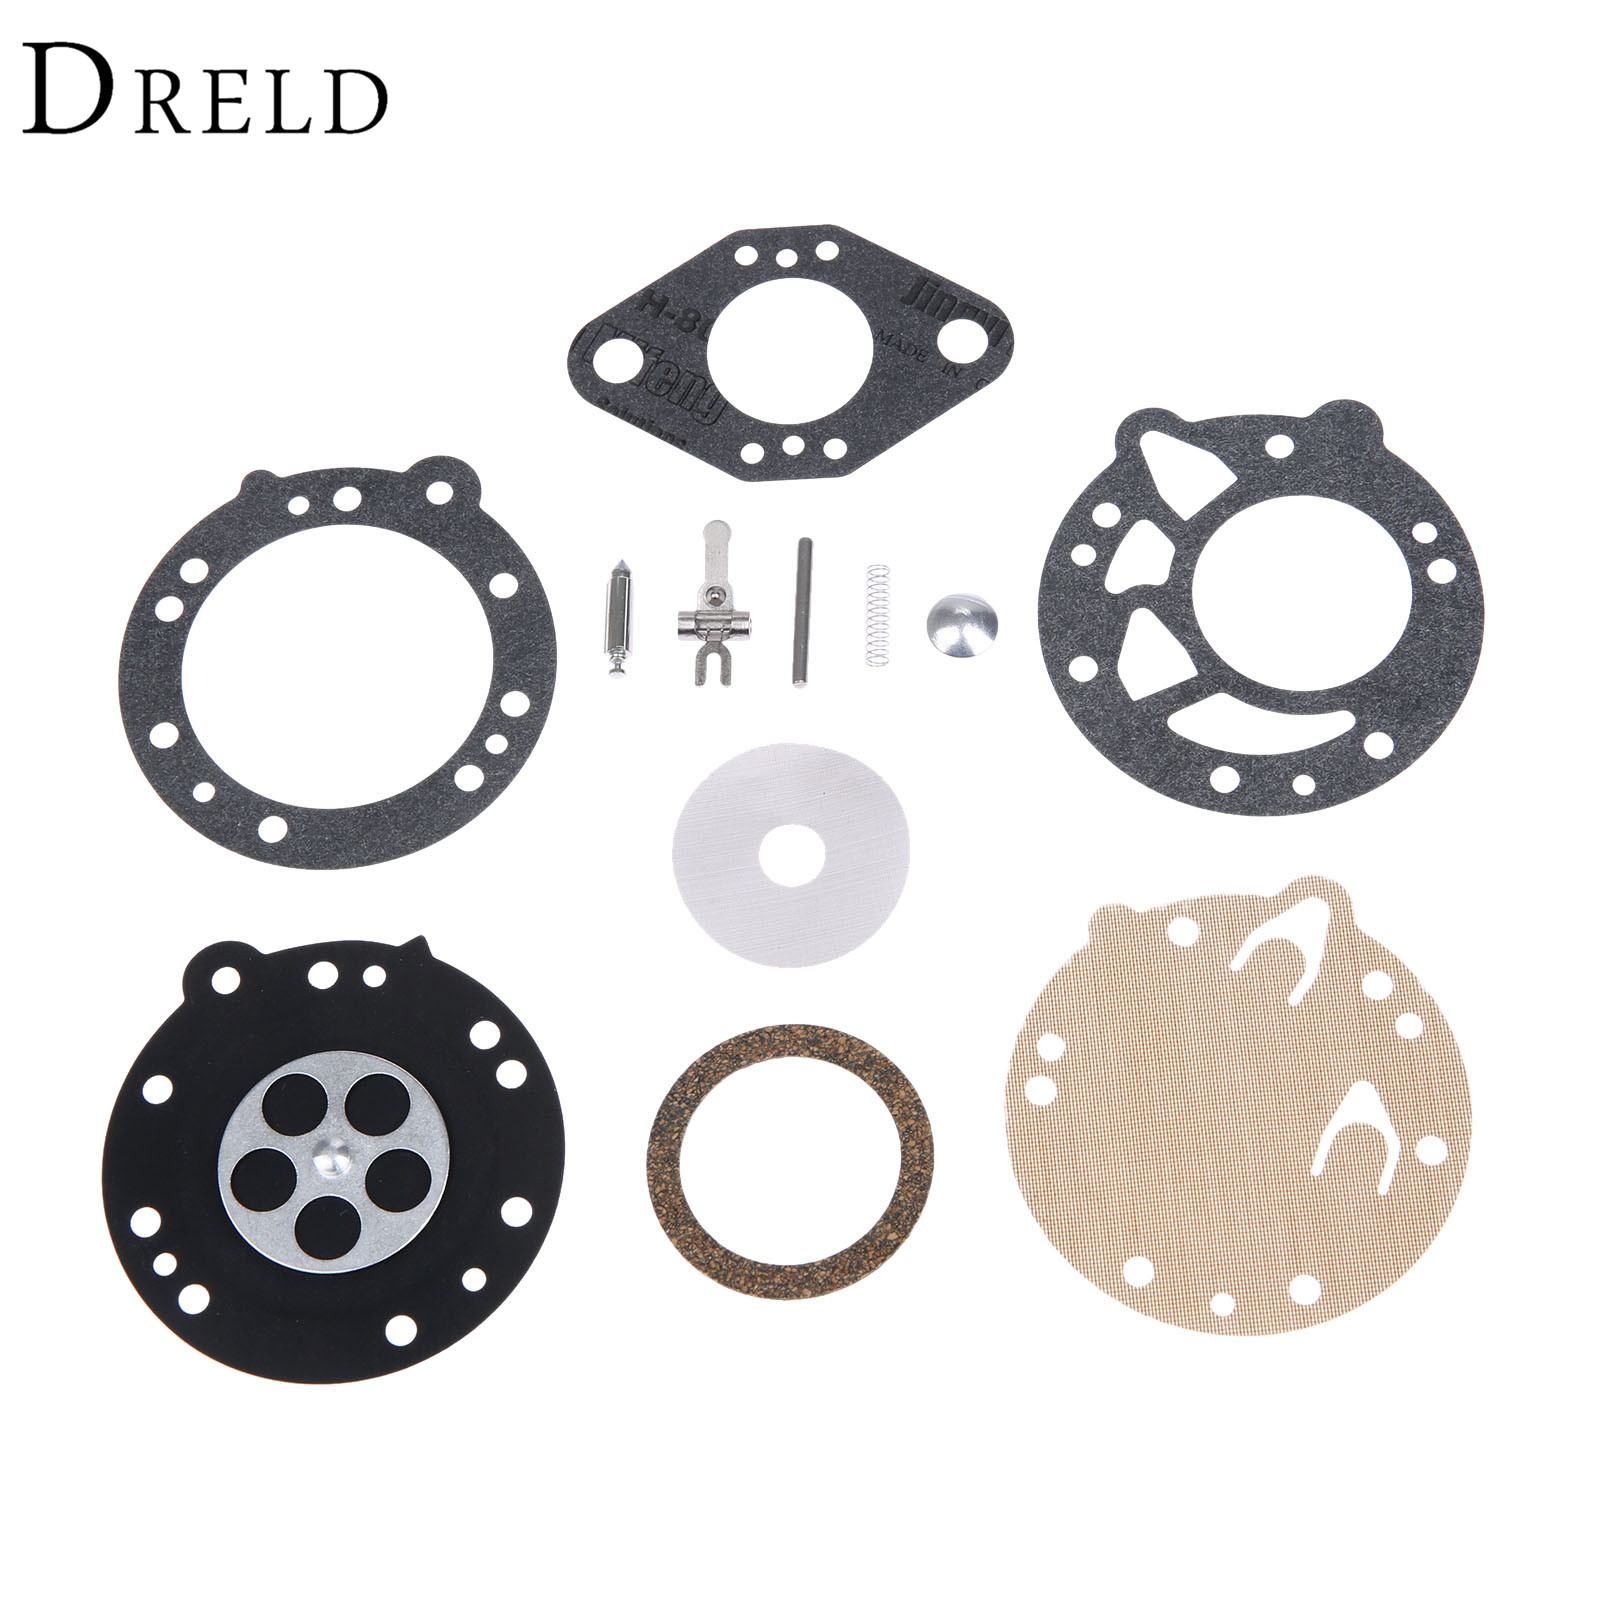 DRELD Carburetor Carb Rebuild Diaphragm Kit for STIHL 08 08S 070 090 Chainsaw TS350 TS360 TILLOTSON RK-83HL Replace Zama RB-42 carburetor carb rebuild kit zama rb 42 for stihl 08 070 090 ts350 ts360 tillotson rk 83hl